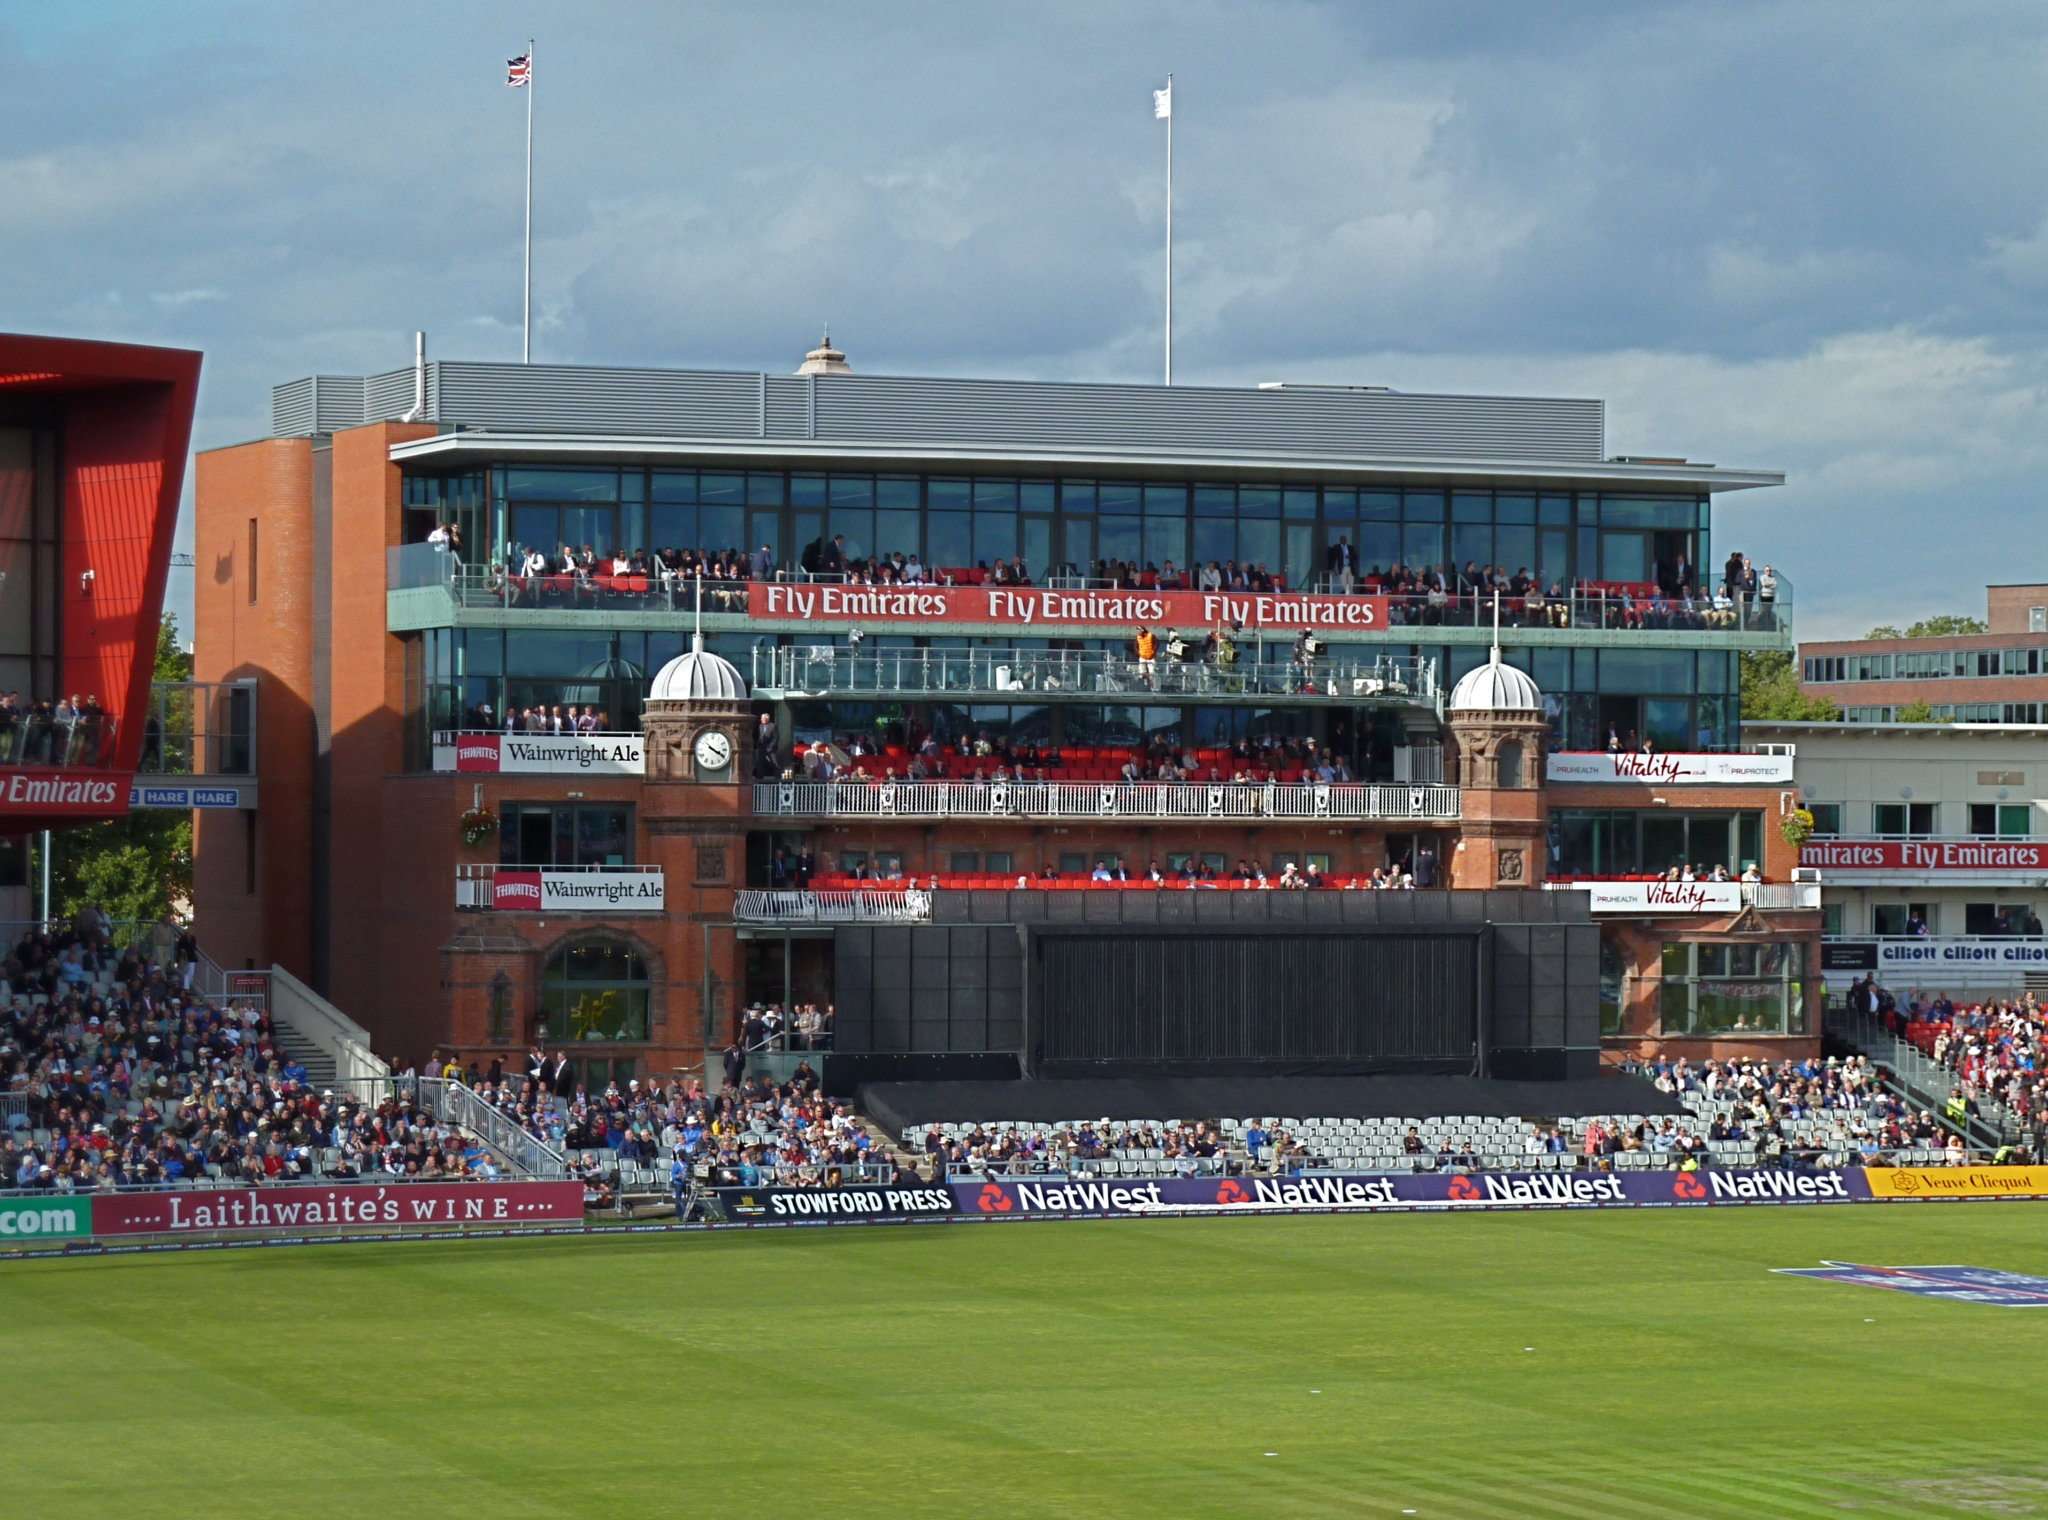 Old Trafford Cricket Ground, Manchester